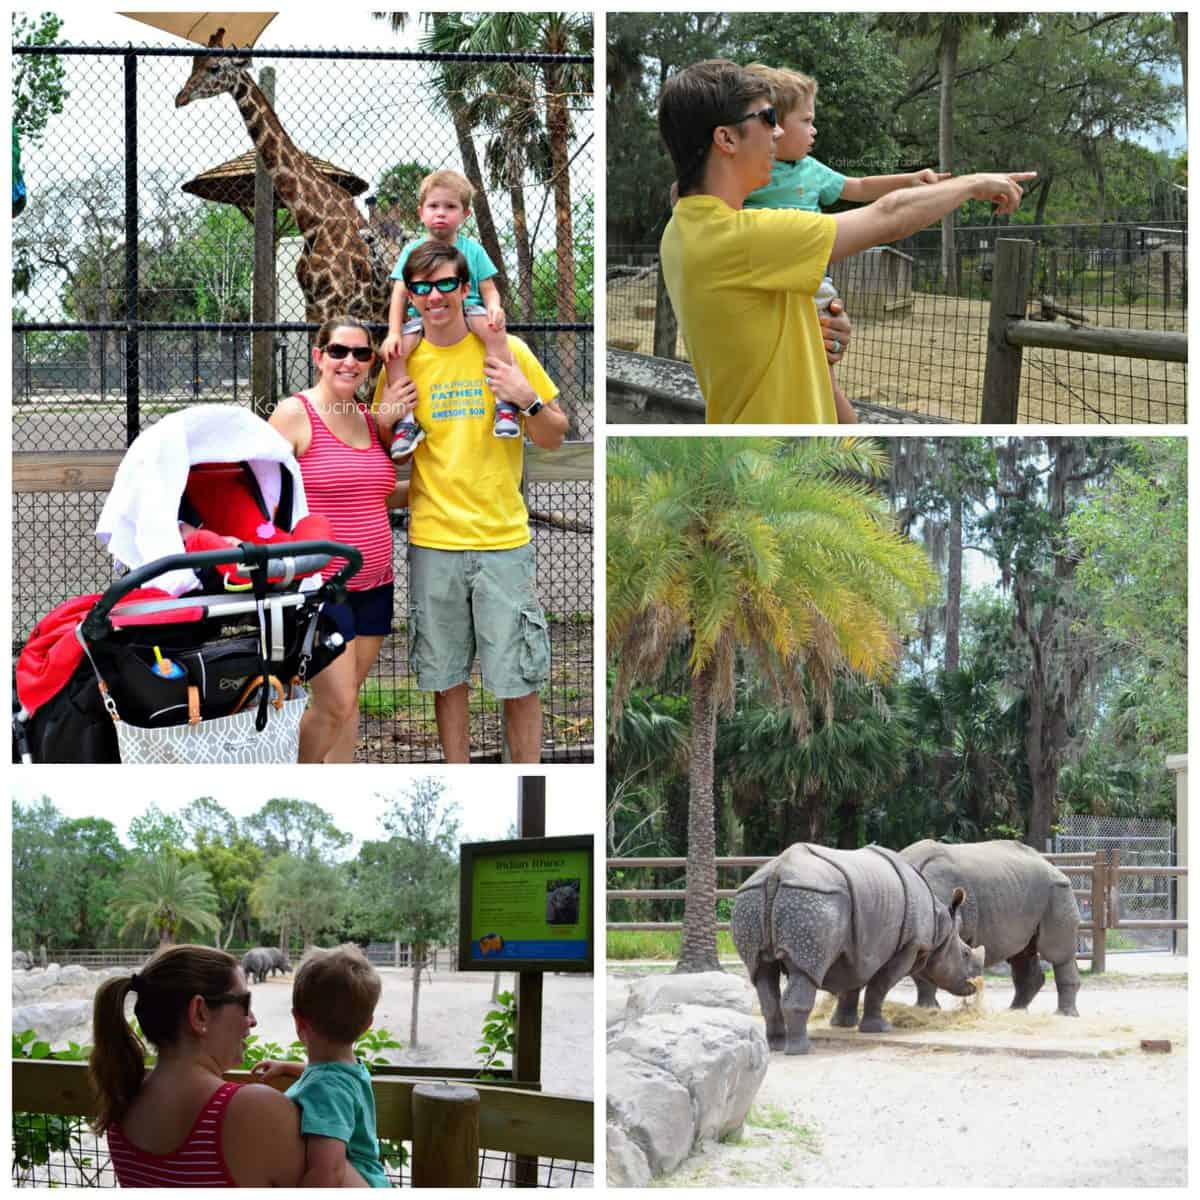 4 photo collage of mother, father, and son enjoying various views of rhinos and giraffes at the zoo.